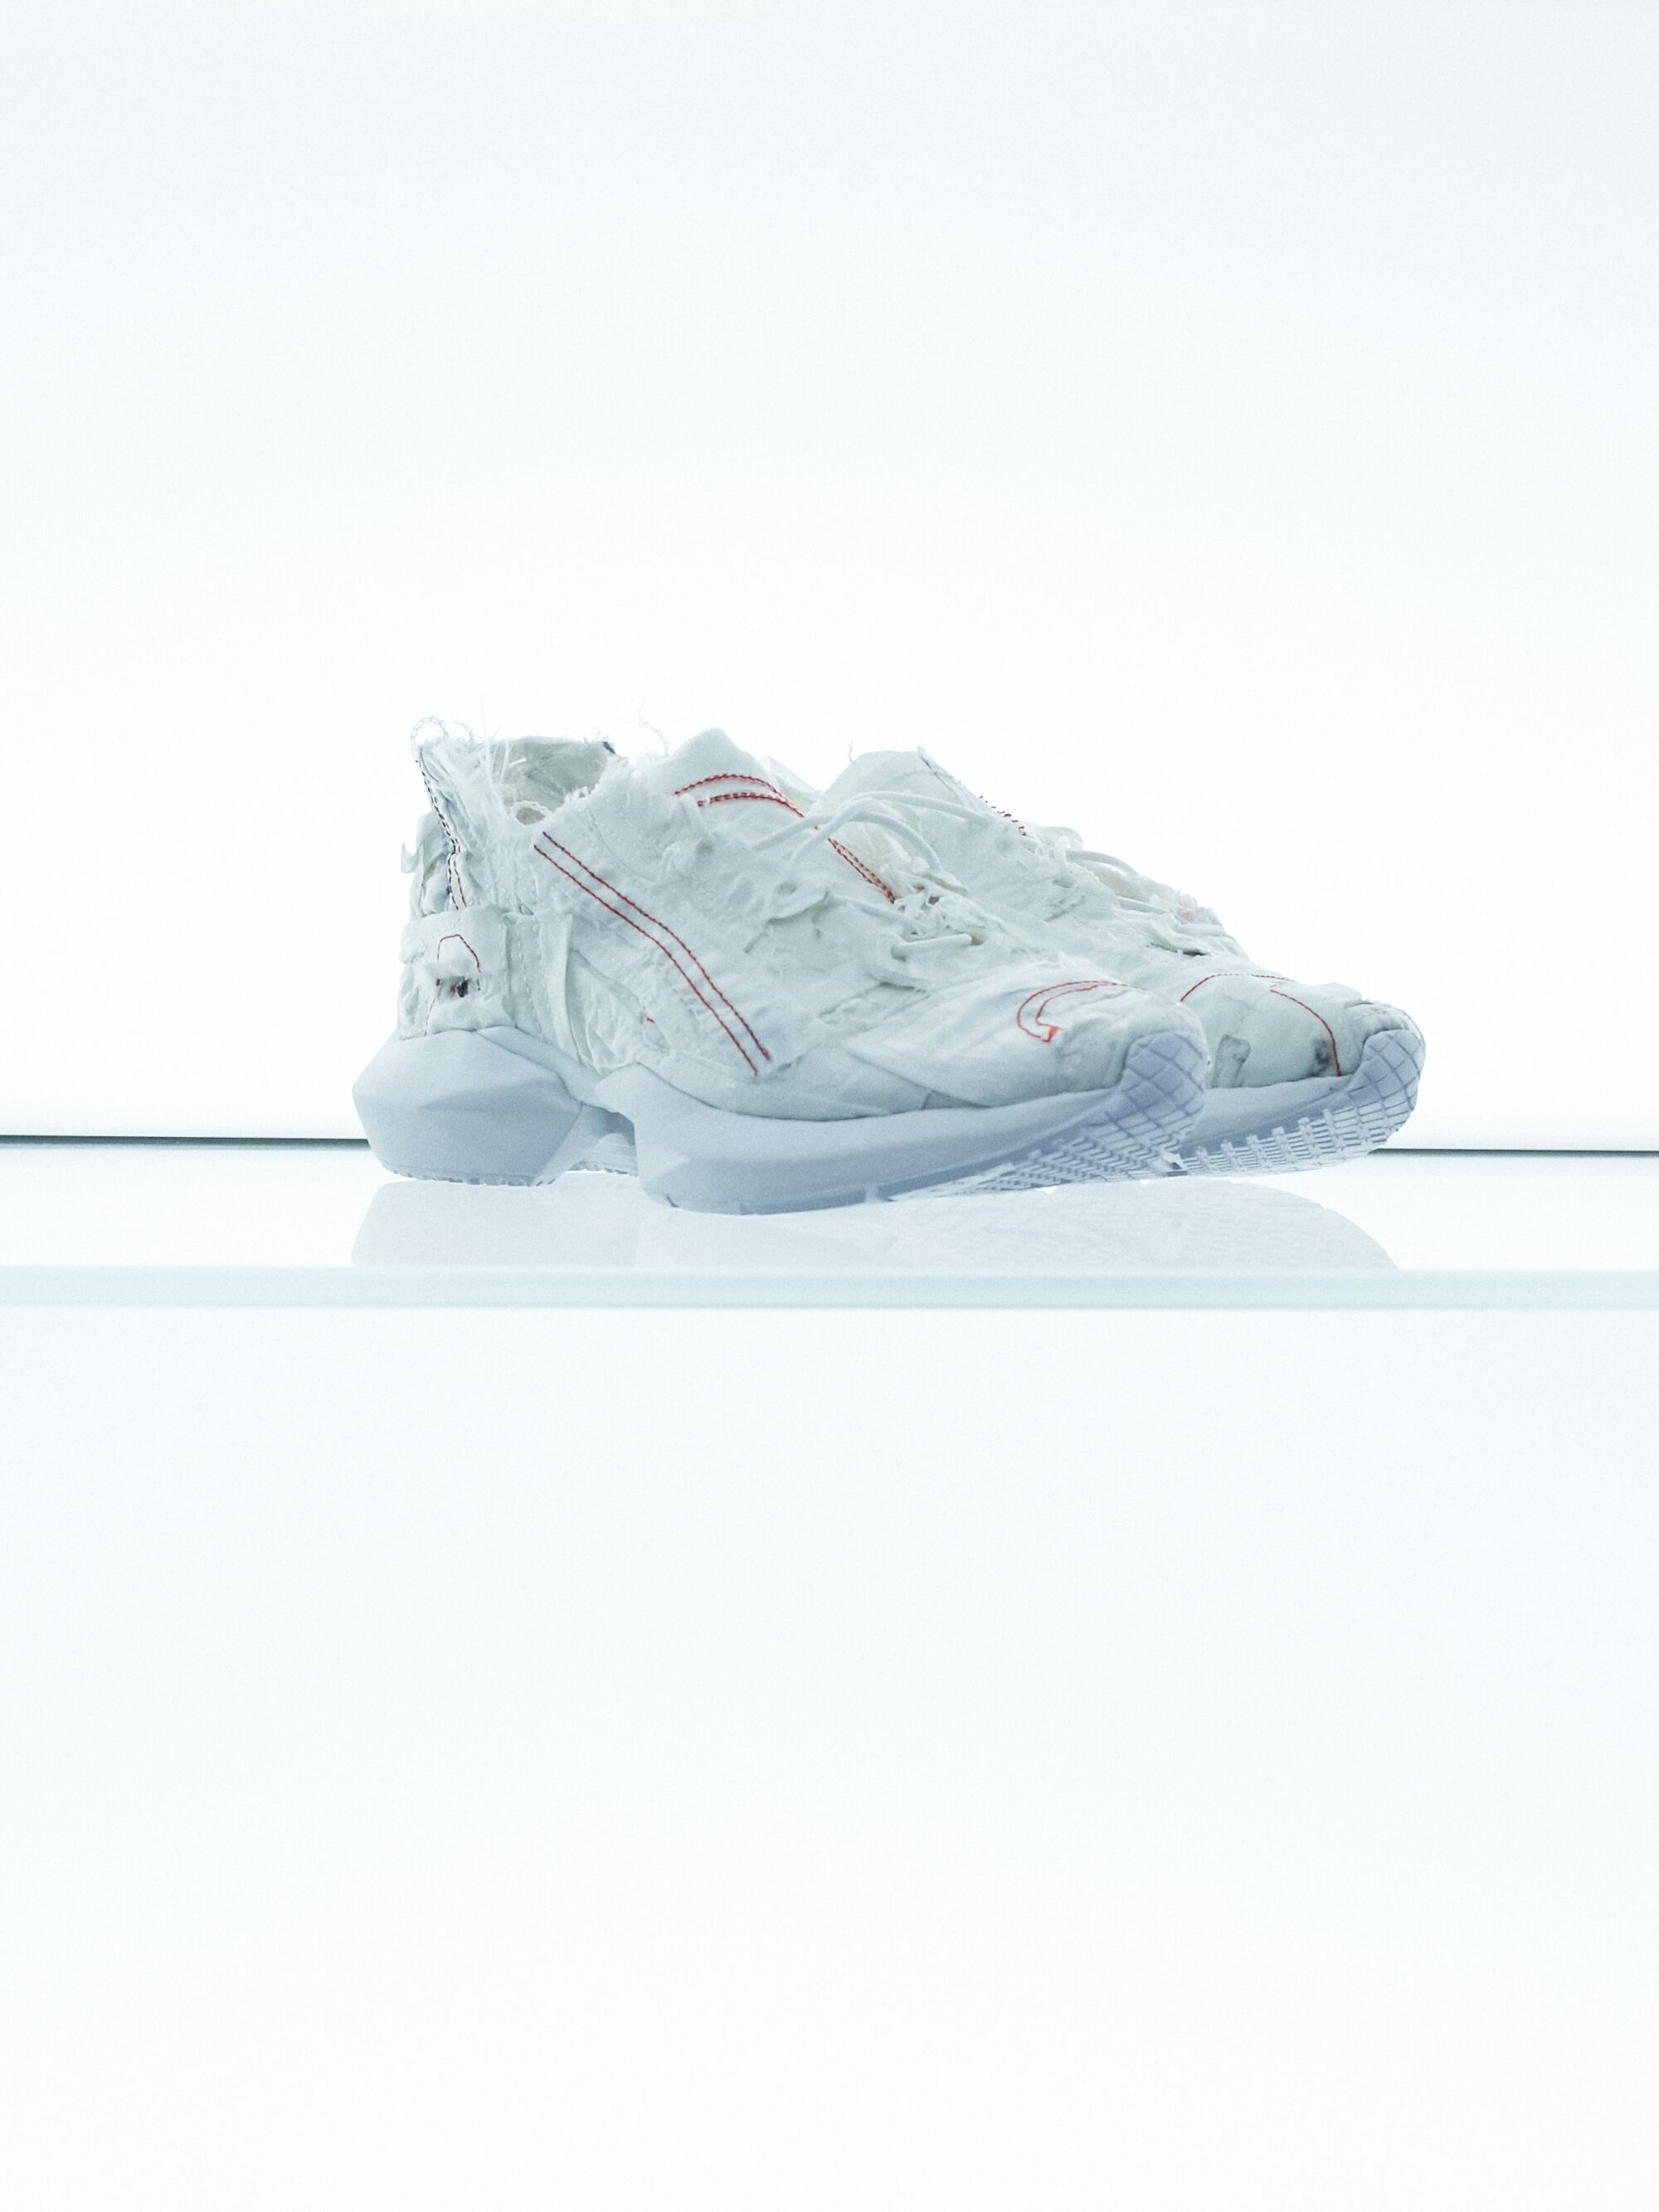 Reebok x Kanghyuk Debut Limited Edition SRS Sole Fury As